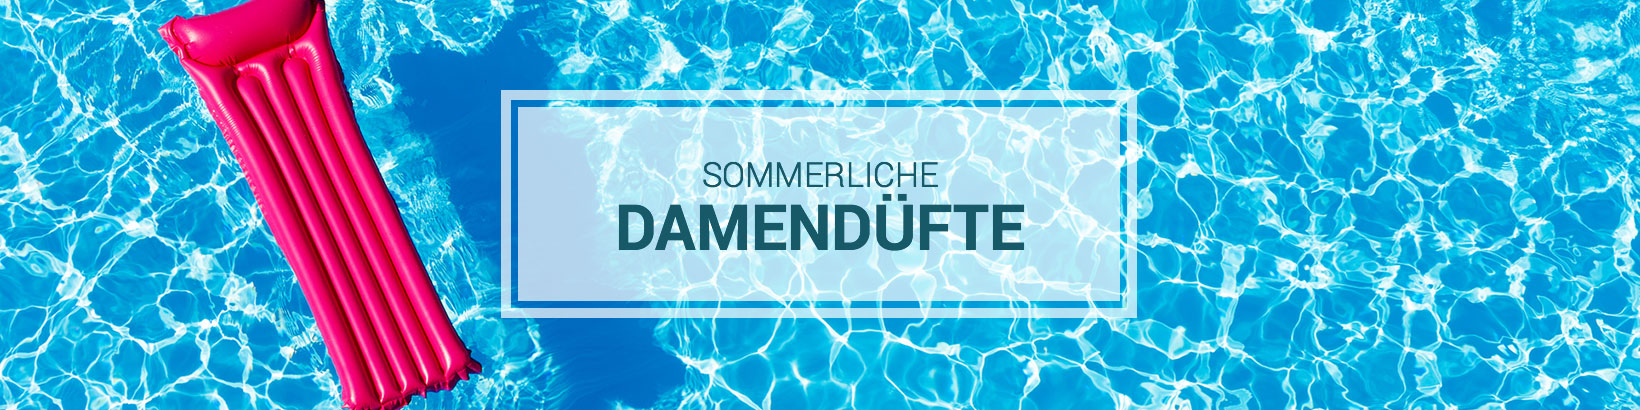 visual-sommerwelt-damenduefte-header